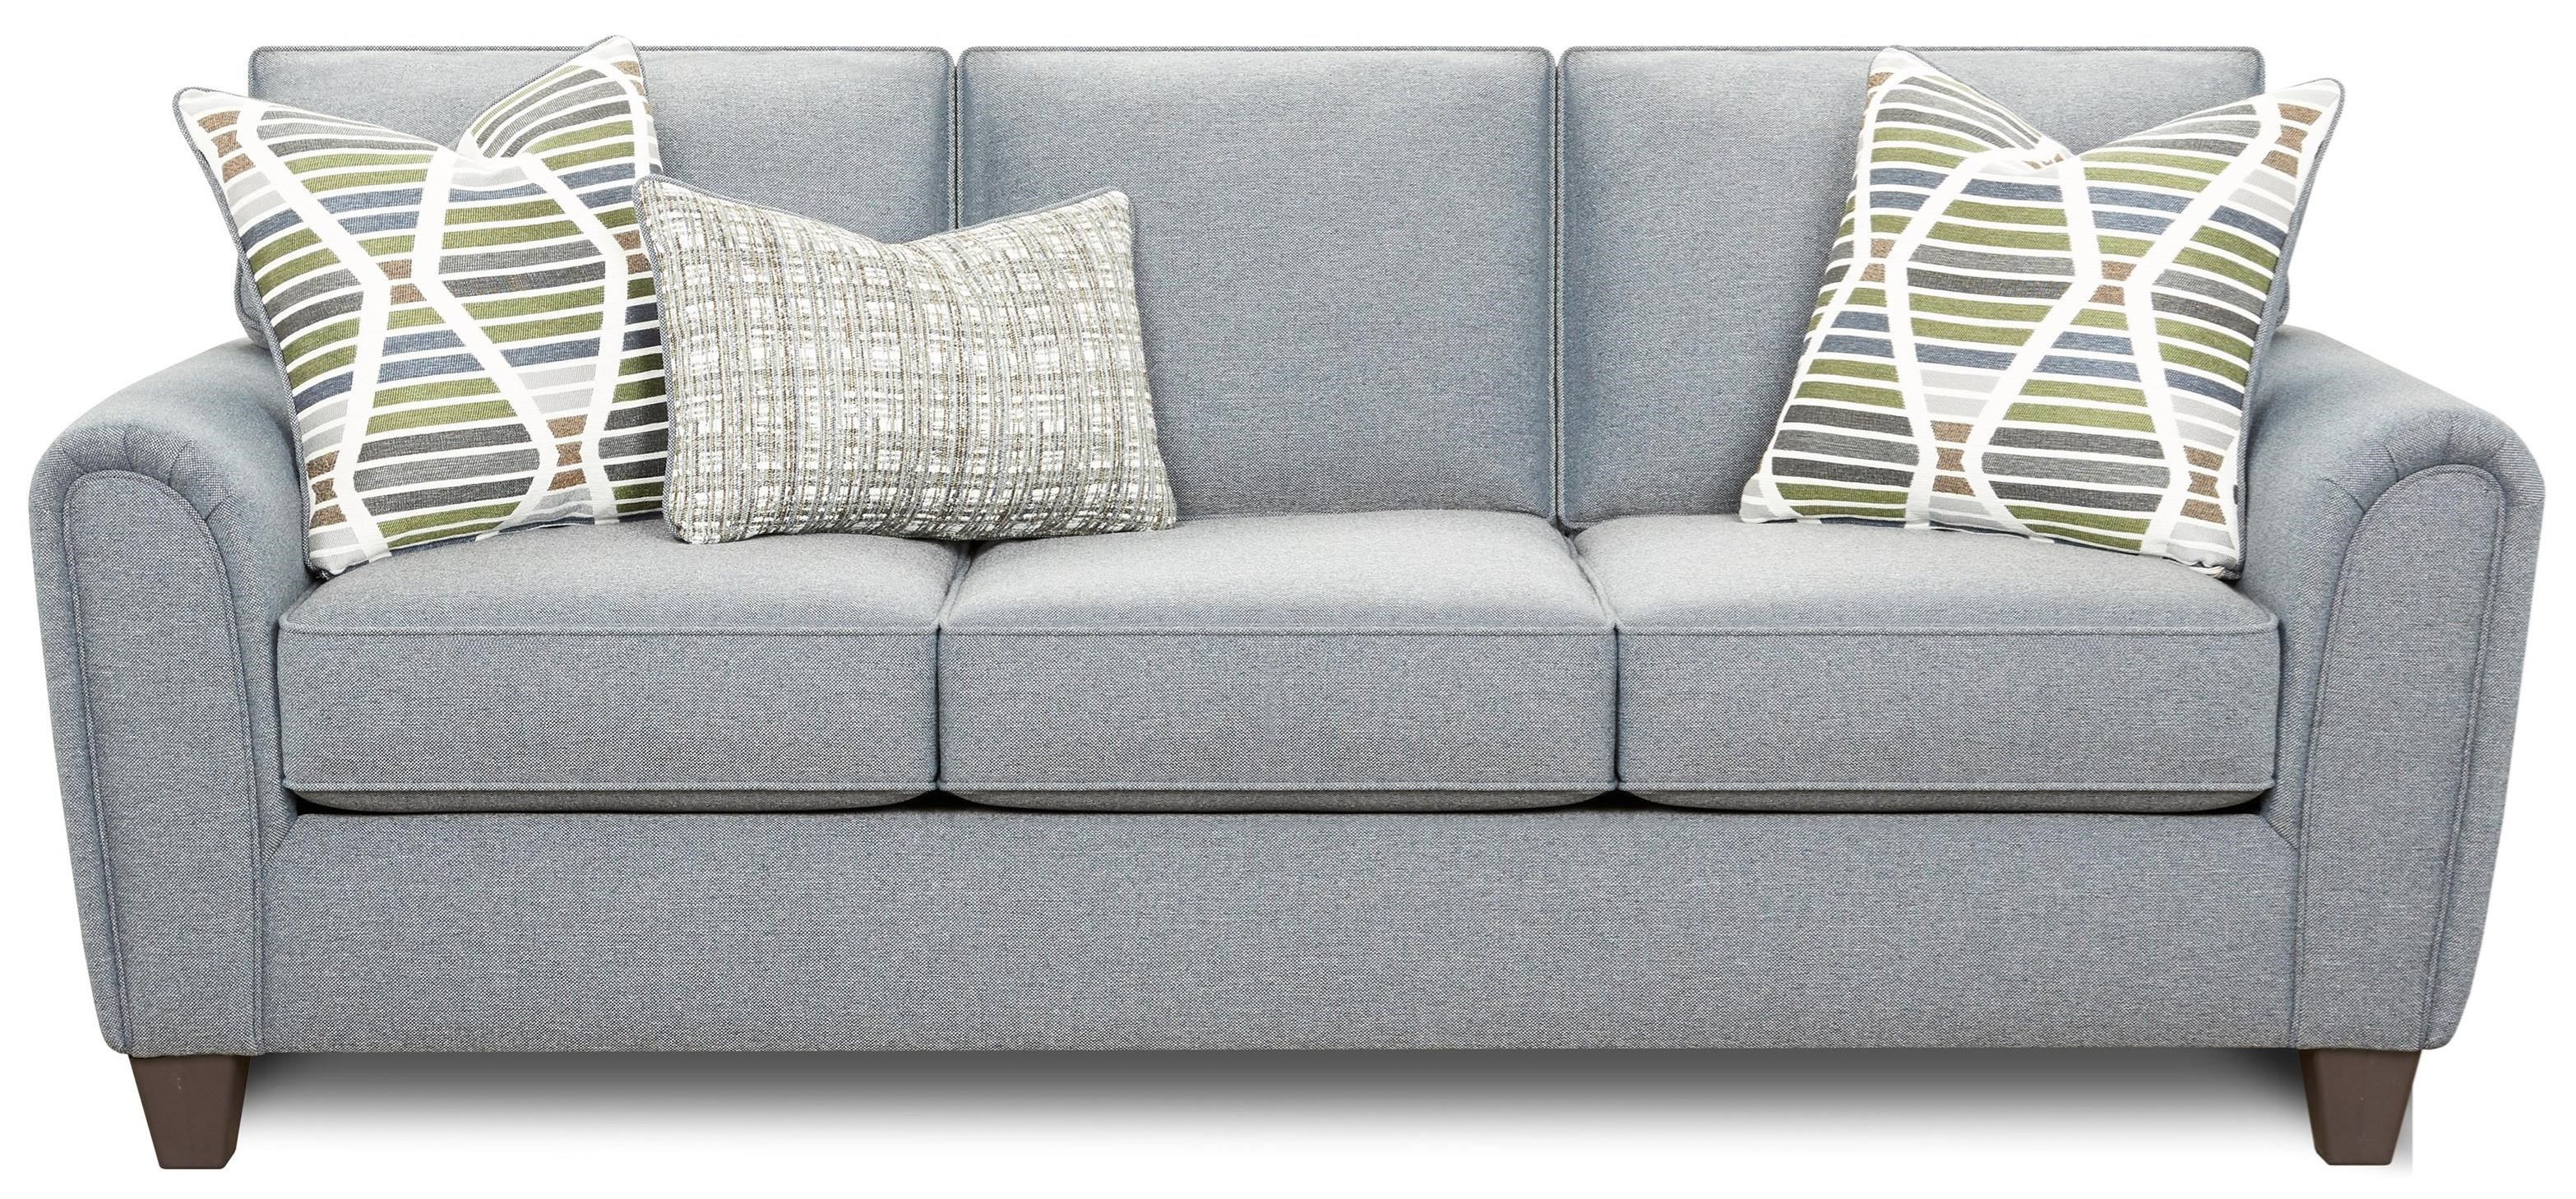 49-00 Sofa Sleeper by Fusion Furniture at Wilson's Furniture